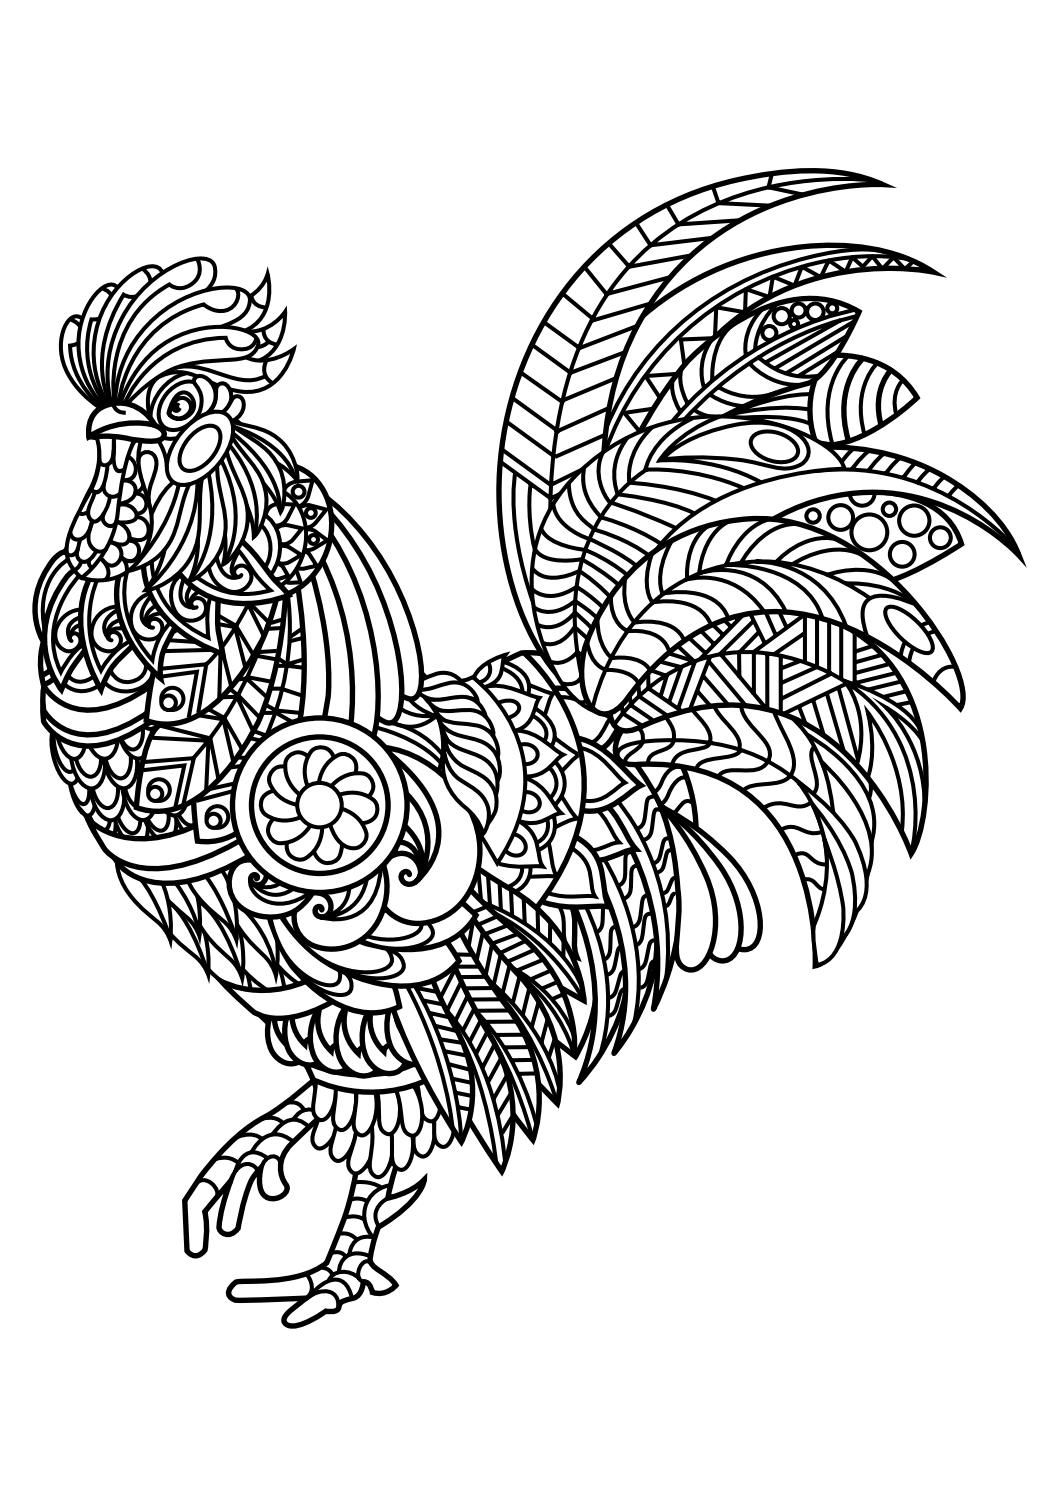 Animal coloring pages pdf | Chicken coloring pages, Bird ... | free printable coloring pages for adults animals